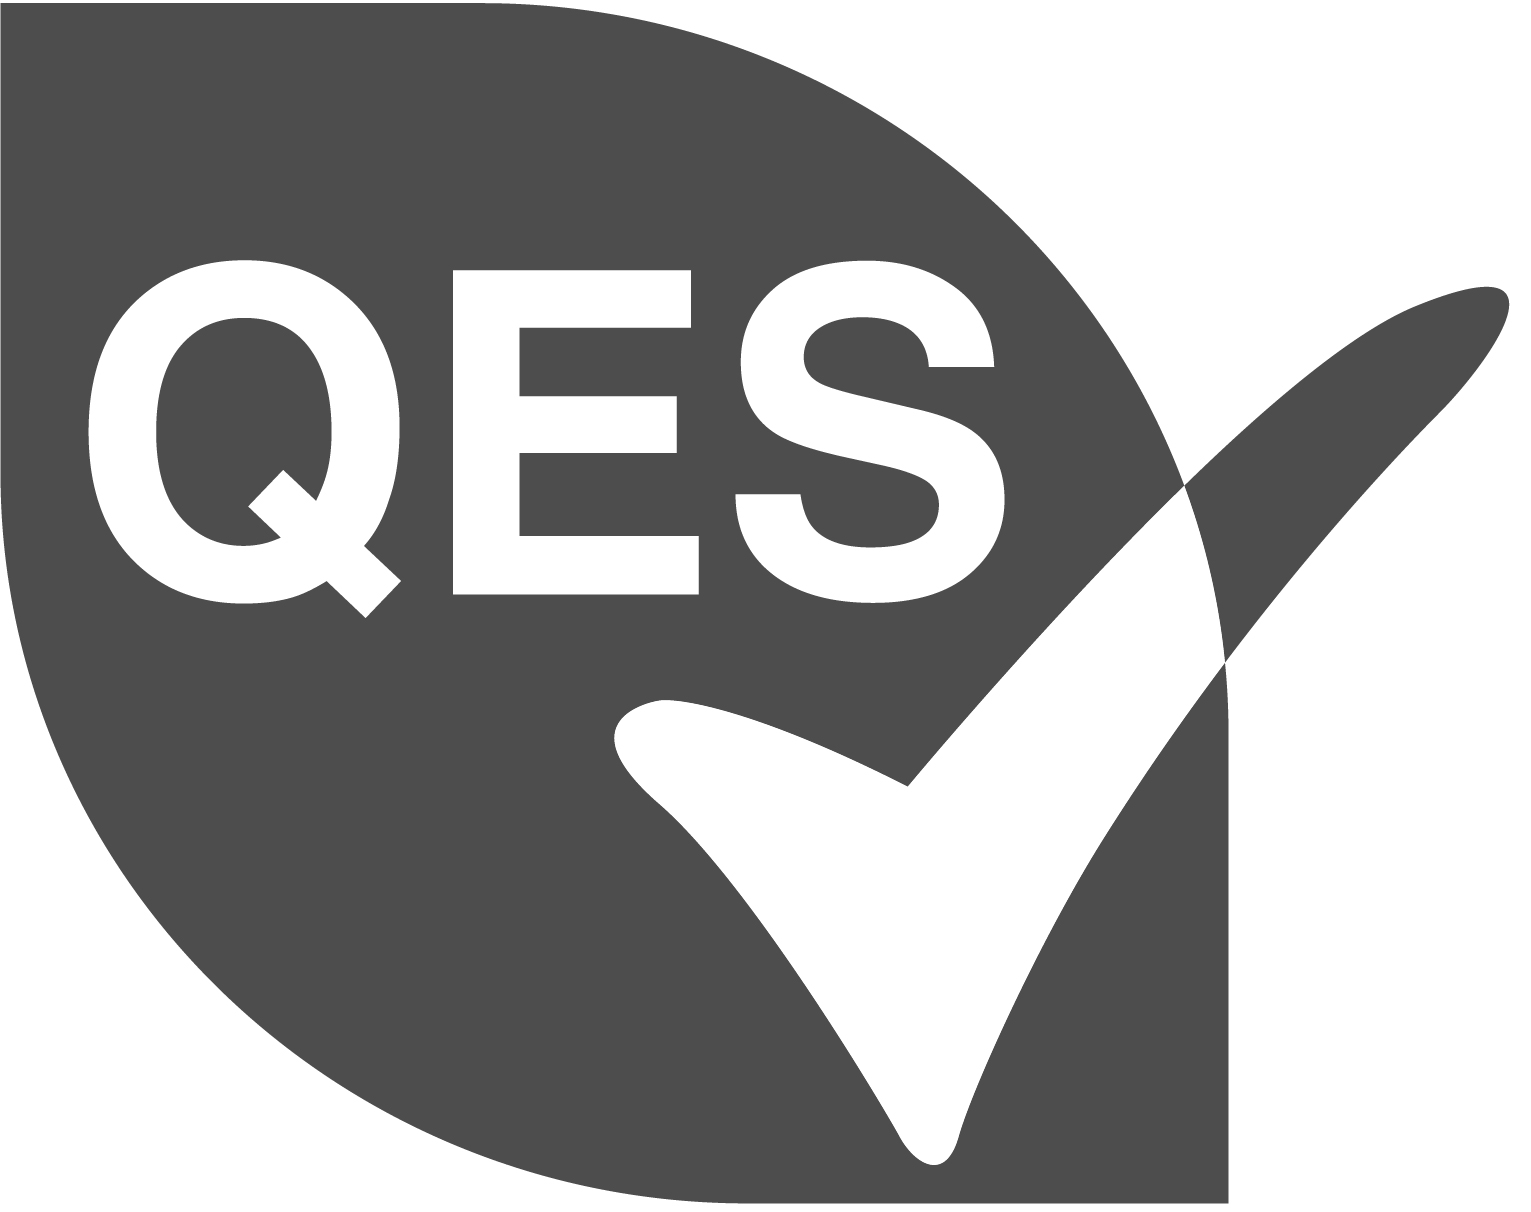 QES-in-gray-leaf